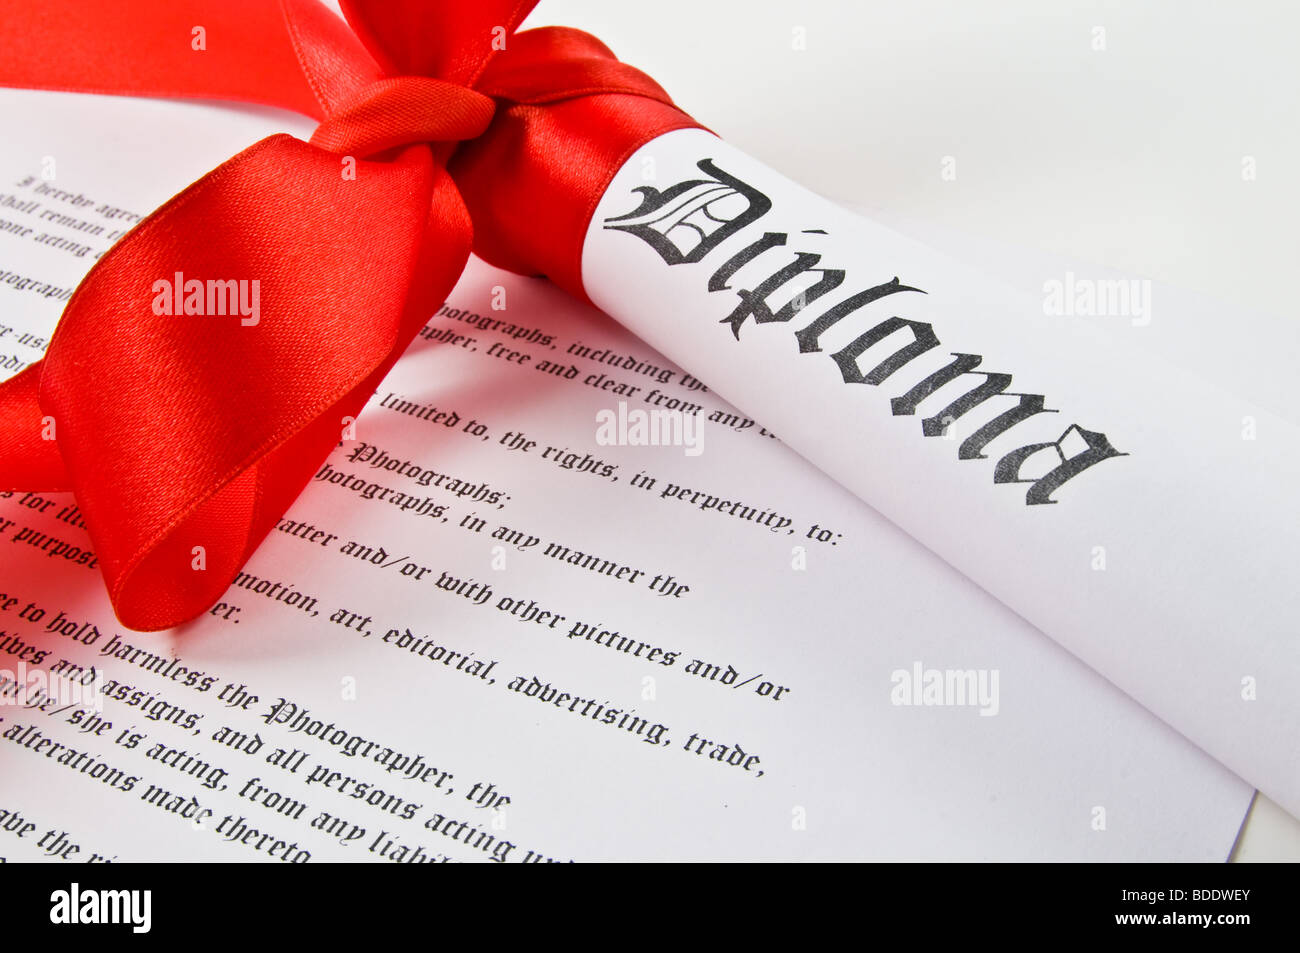 Diploma with red ribbon on white background - Stock Image